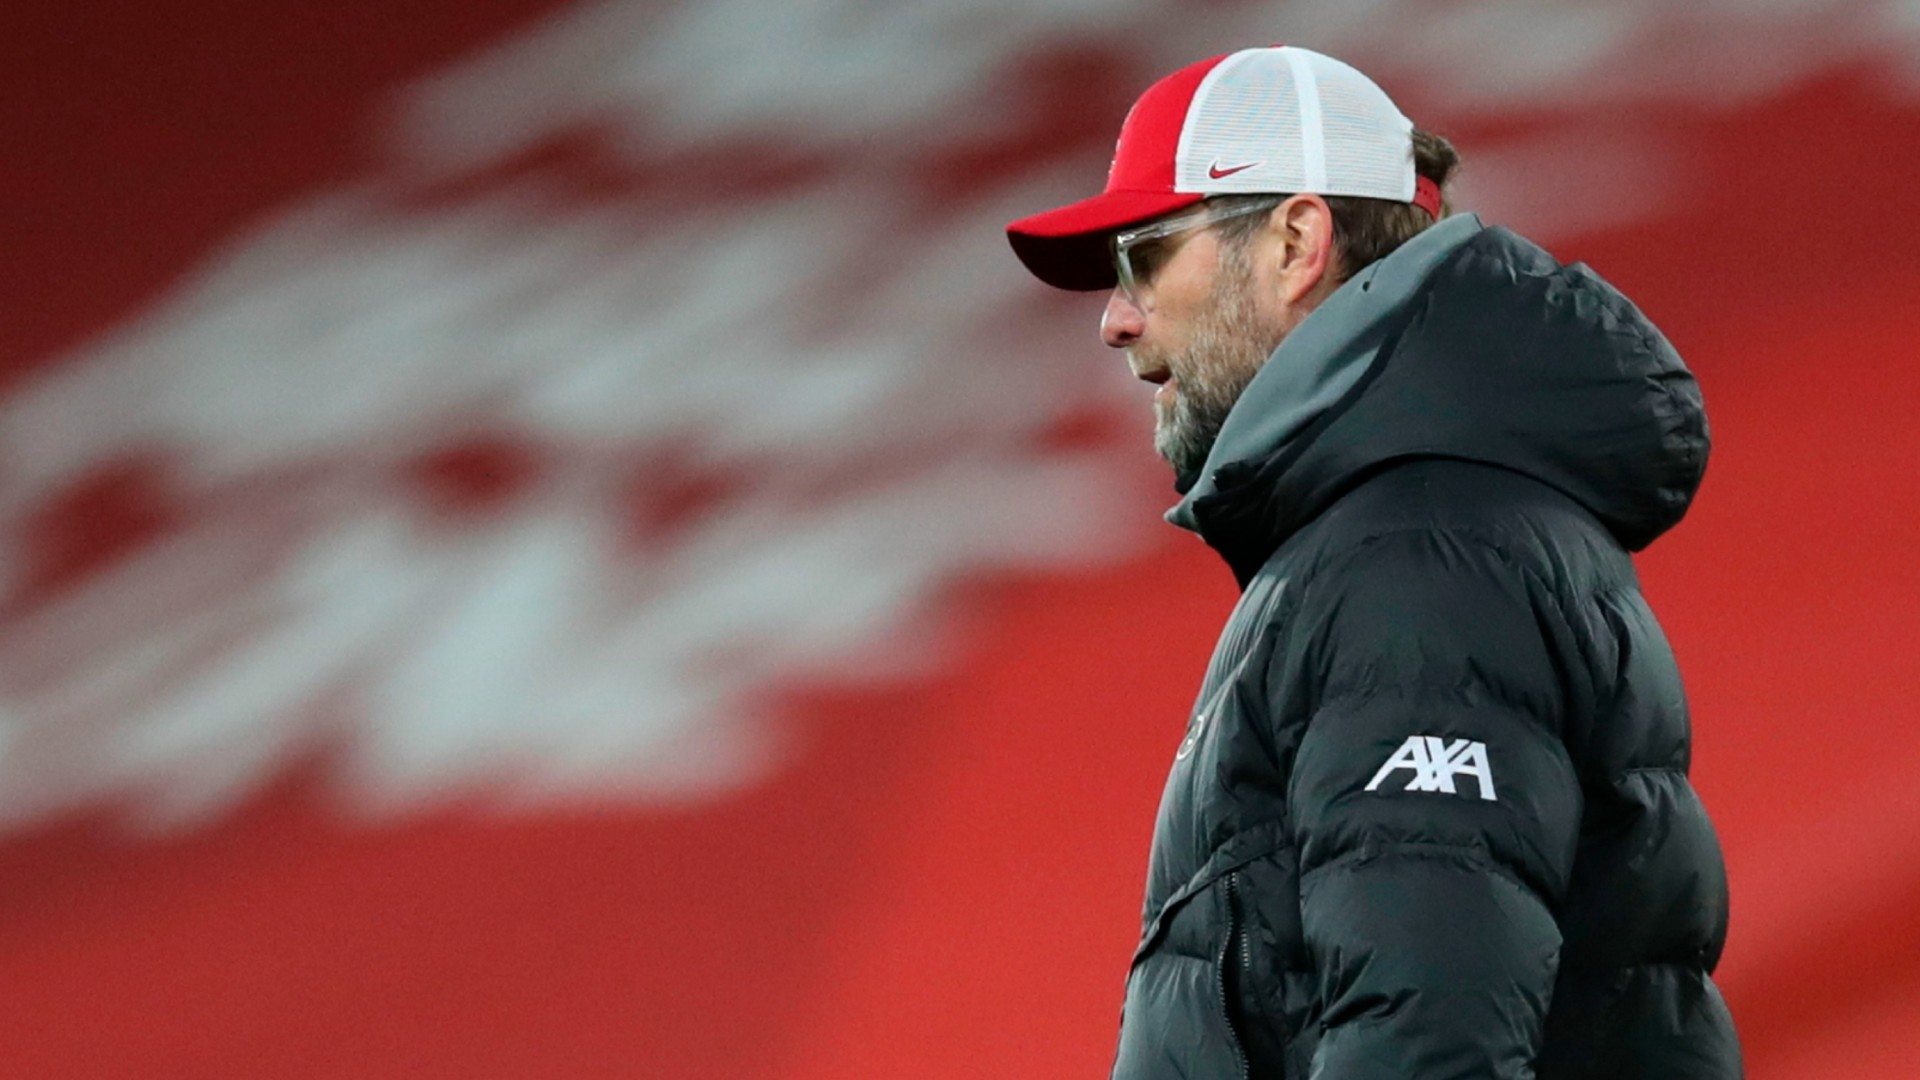 Klopp exit would see 'champagne flow' at Man Utd, Chelsea and Man City, claims Liverpool legend Carragher